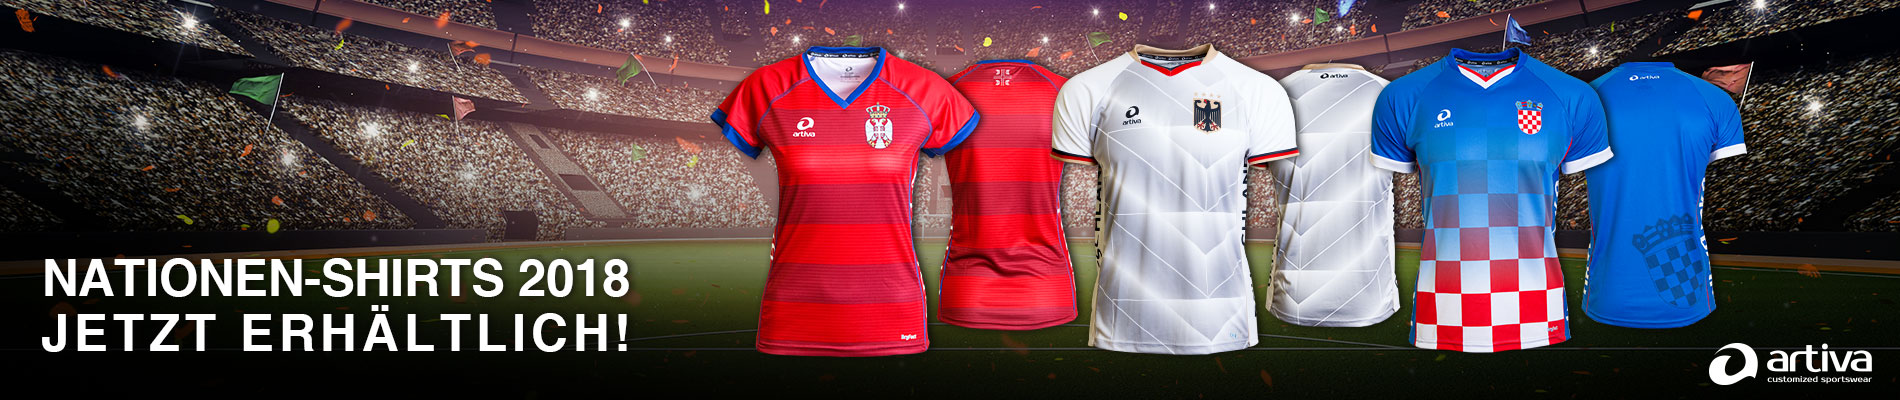 Nationenshirts - artiva customized sportswear